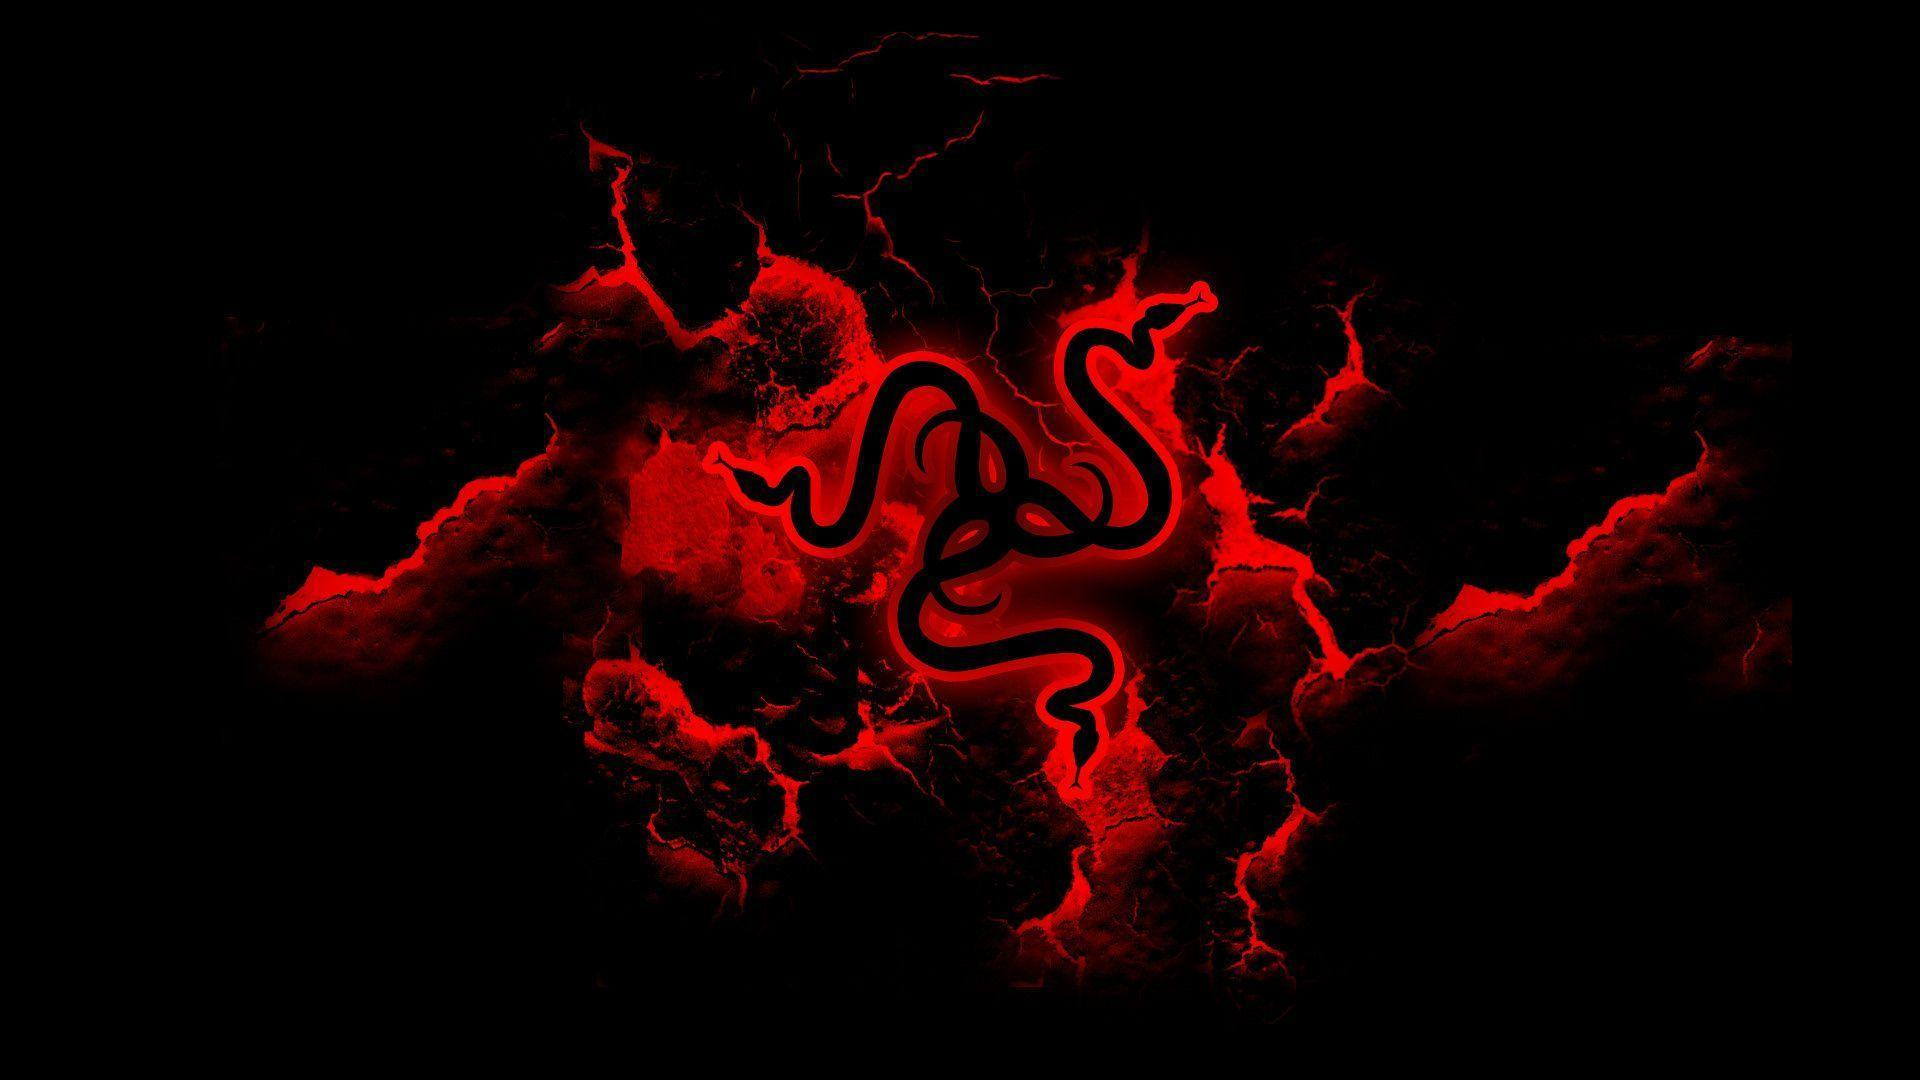 razer gaming wallpapers wallpaper cave